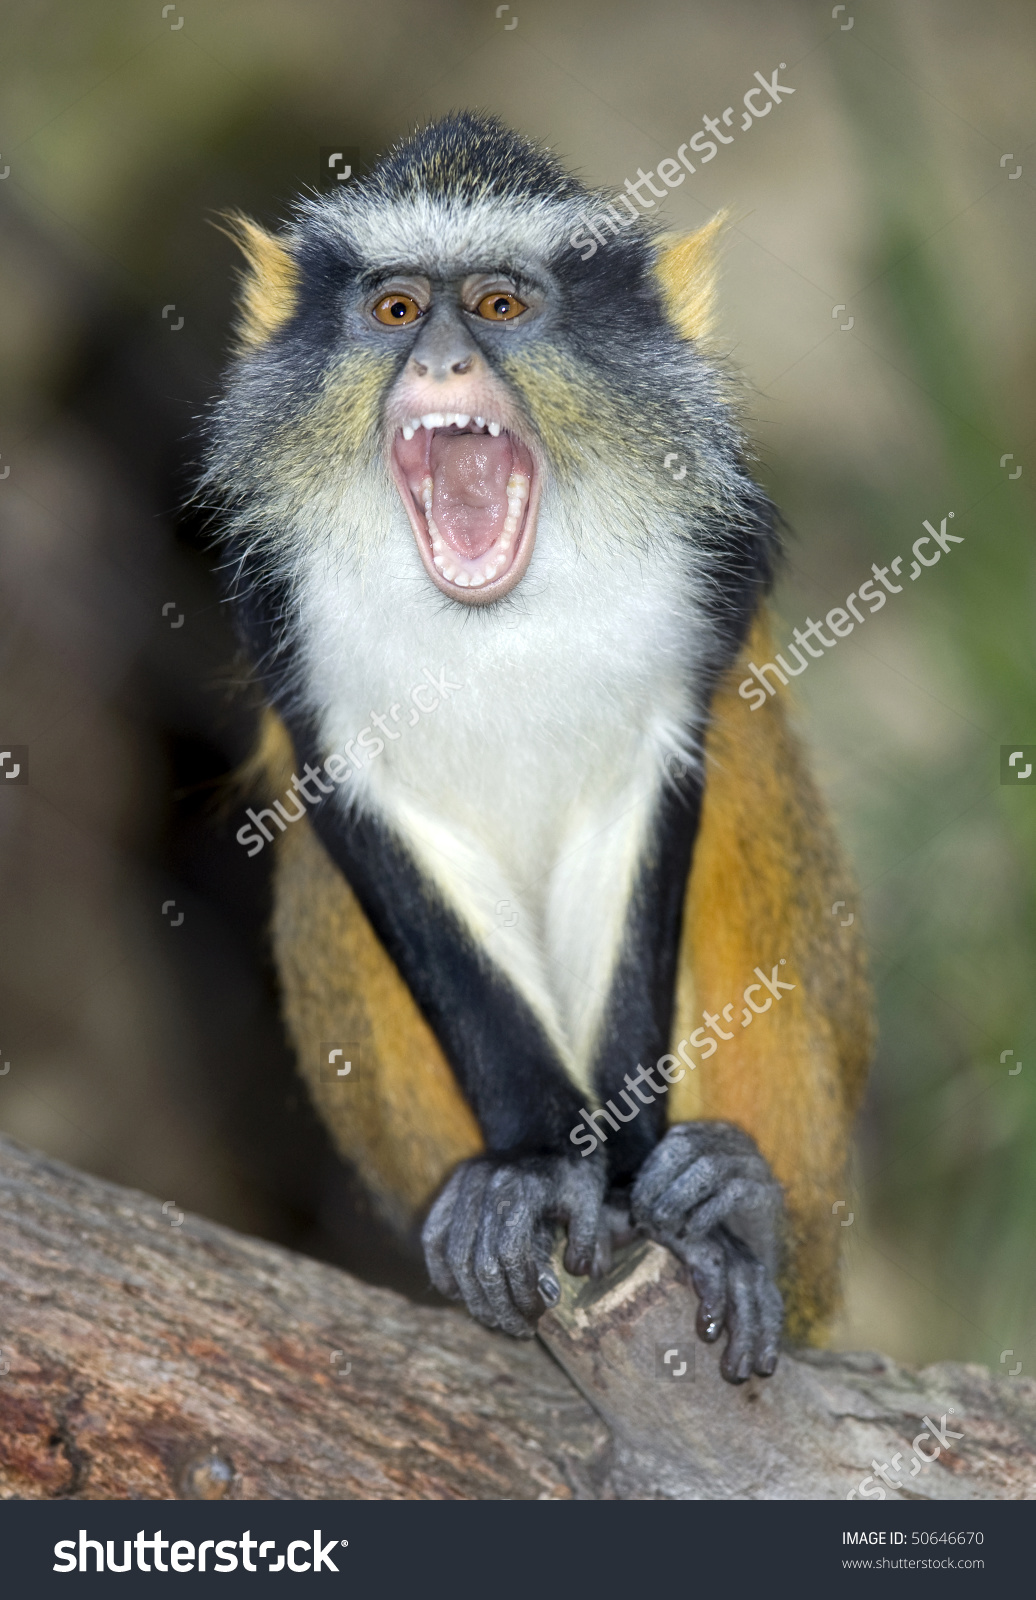 White-faced Guenon clipart #4, Download drawings